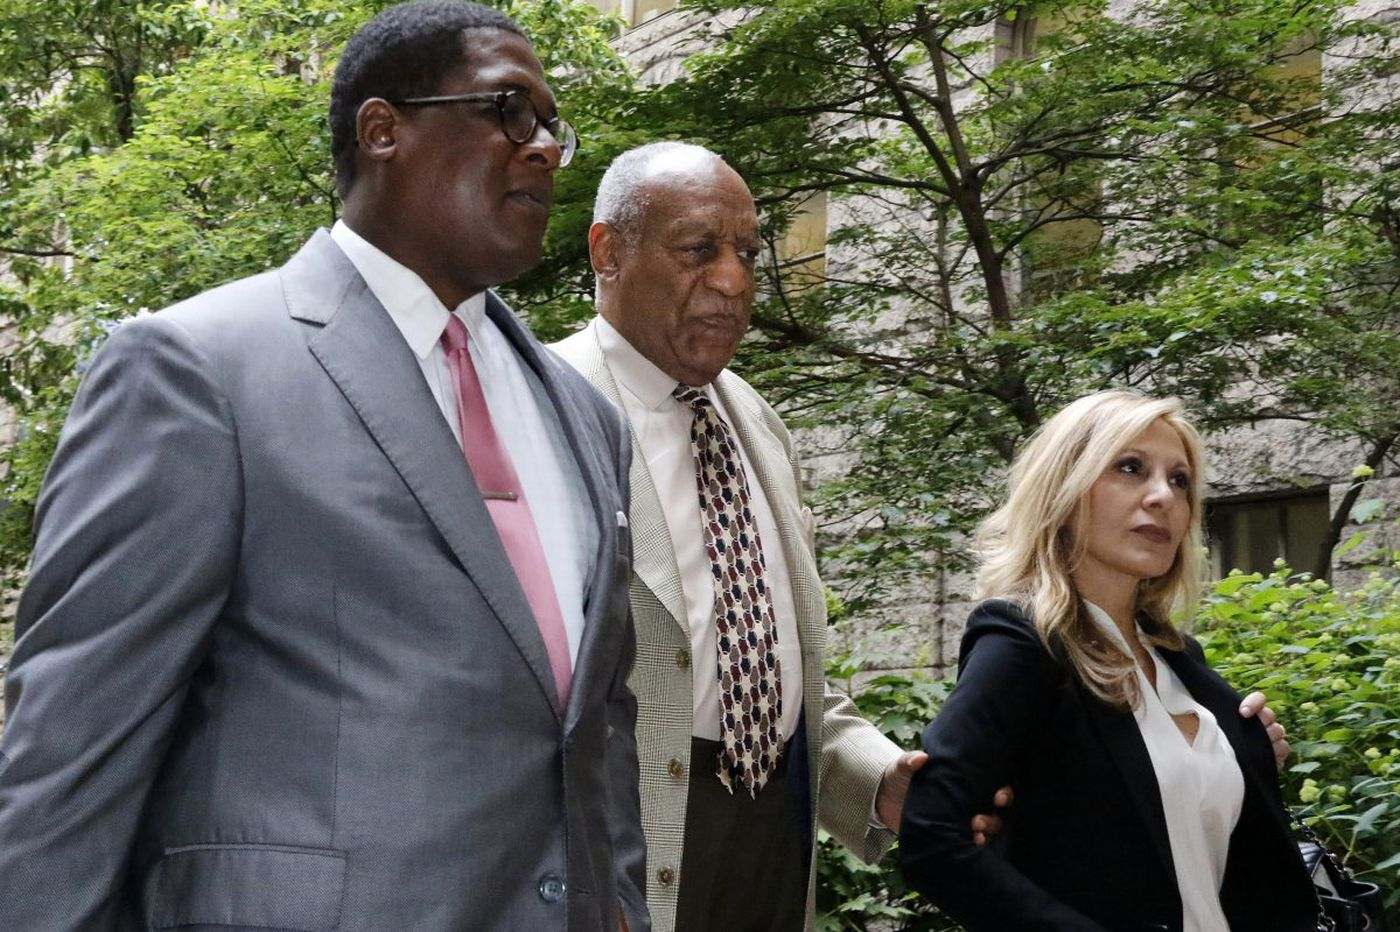 Cosby lawyers: Prosecutors are excluding blacks from jury